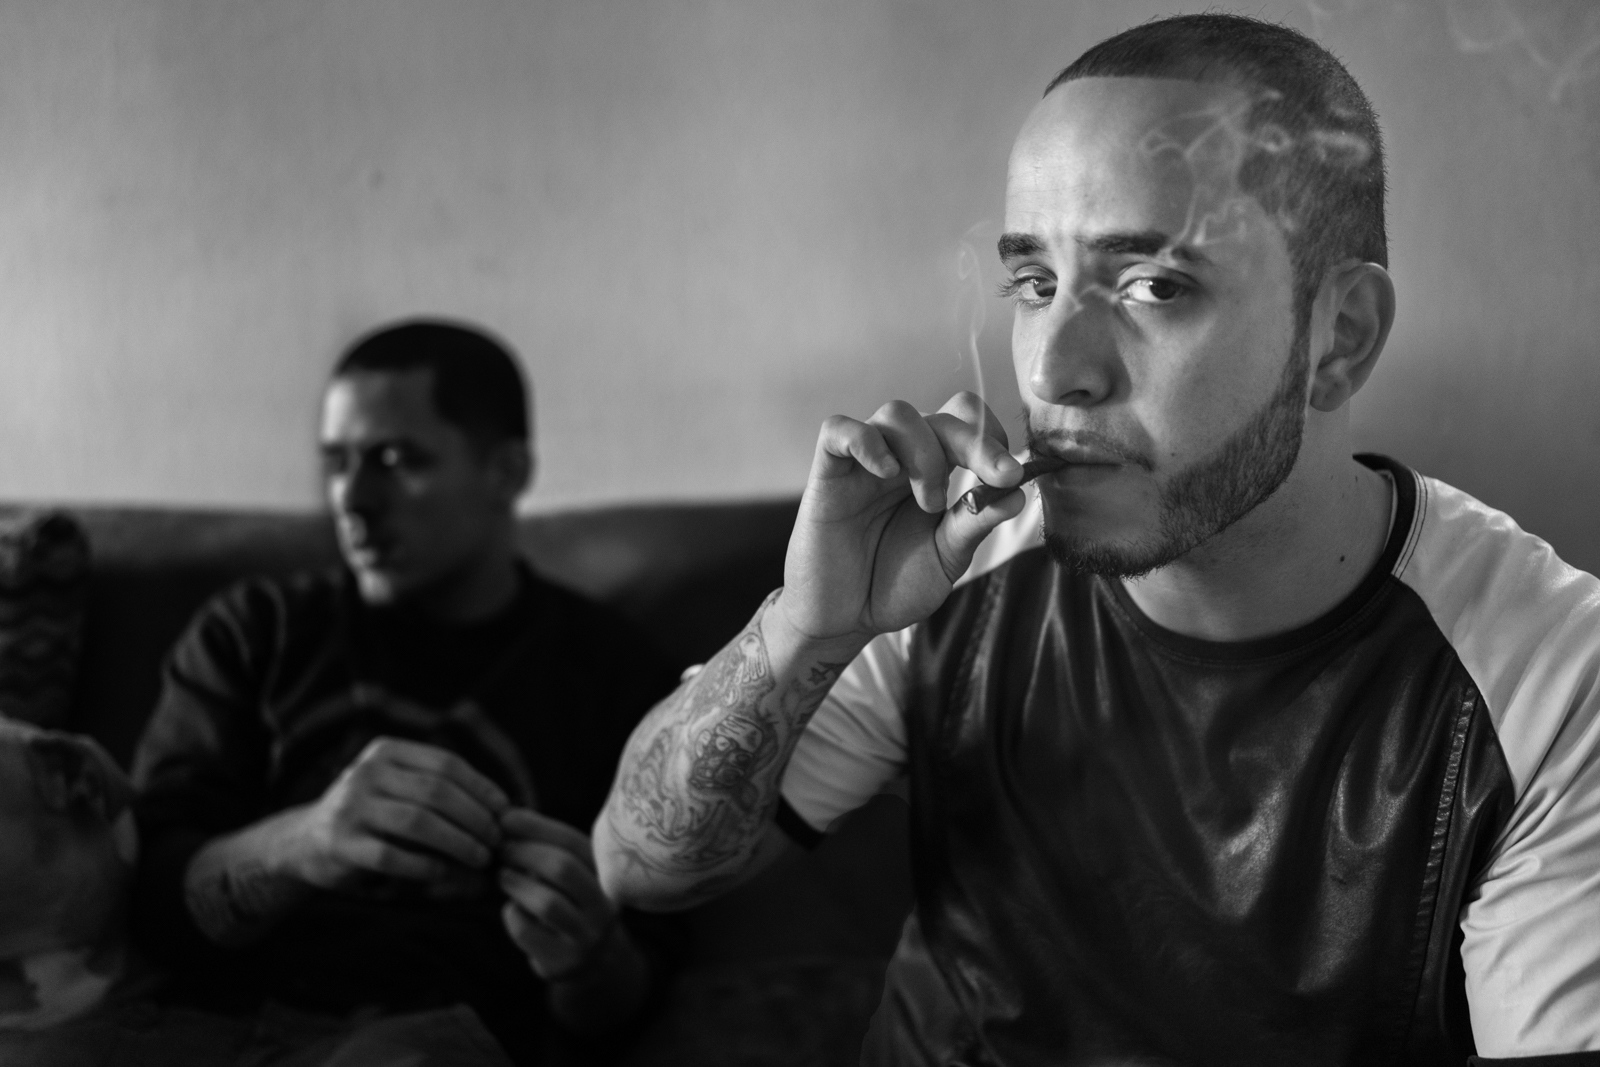 Demetrius smokes a joint of marijuana at his apartment in Brooklyn, Demetrius was released from jail 1 month ago after spending 3 years incarcerated.